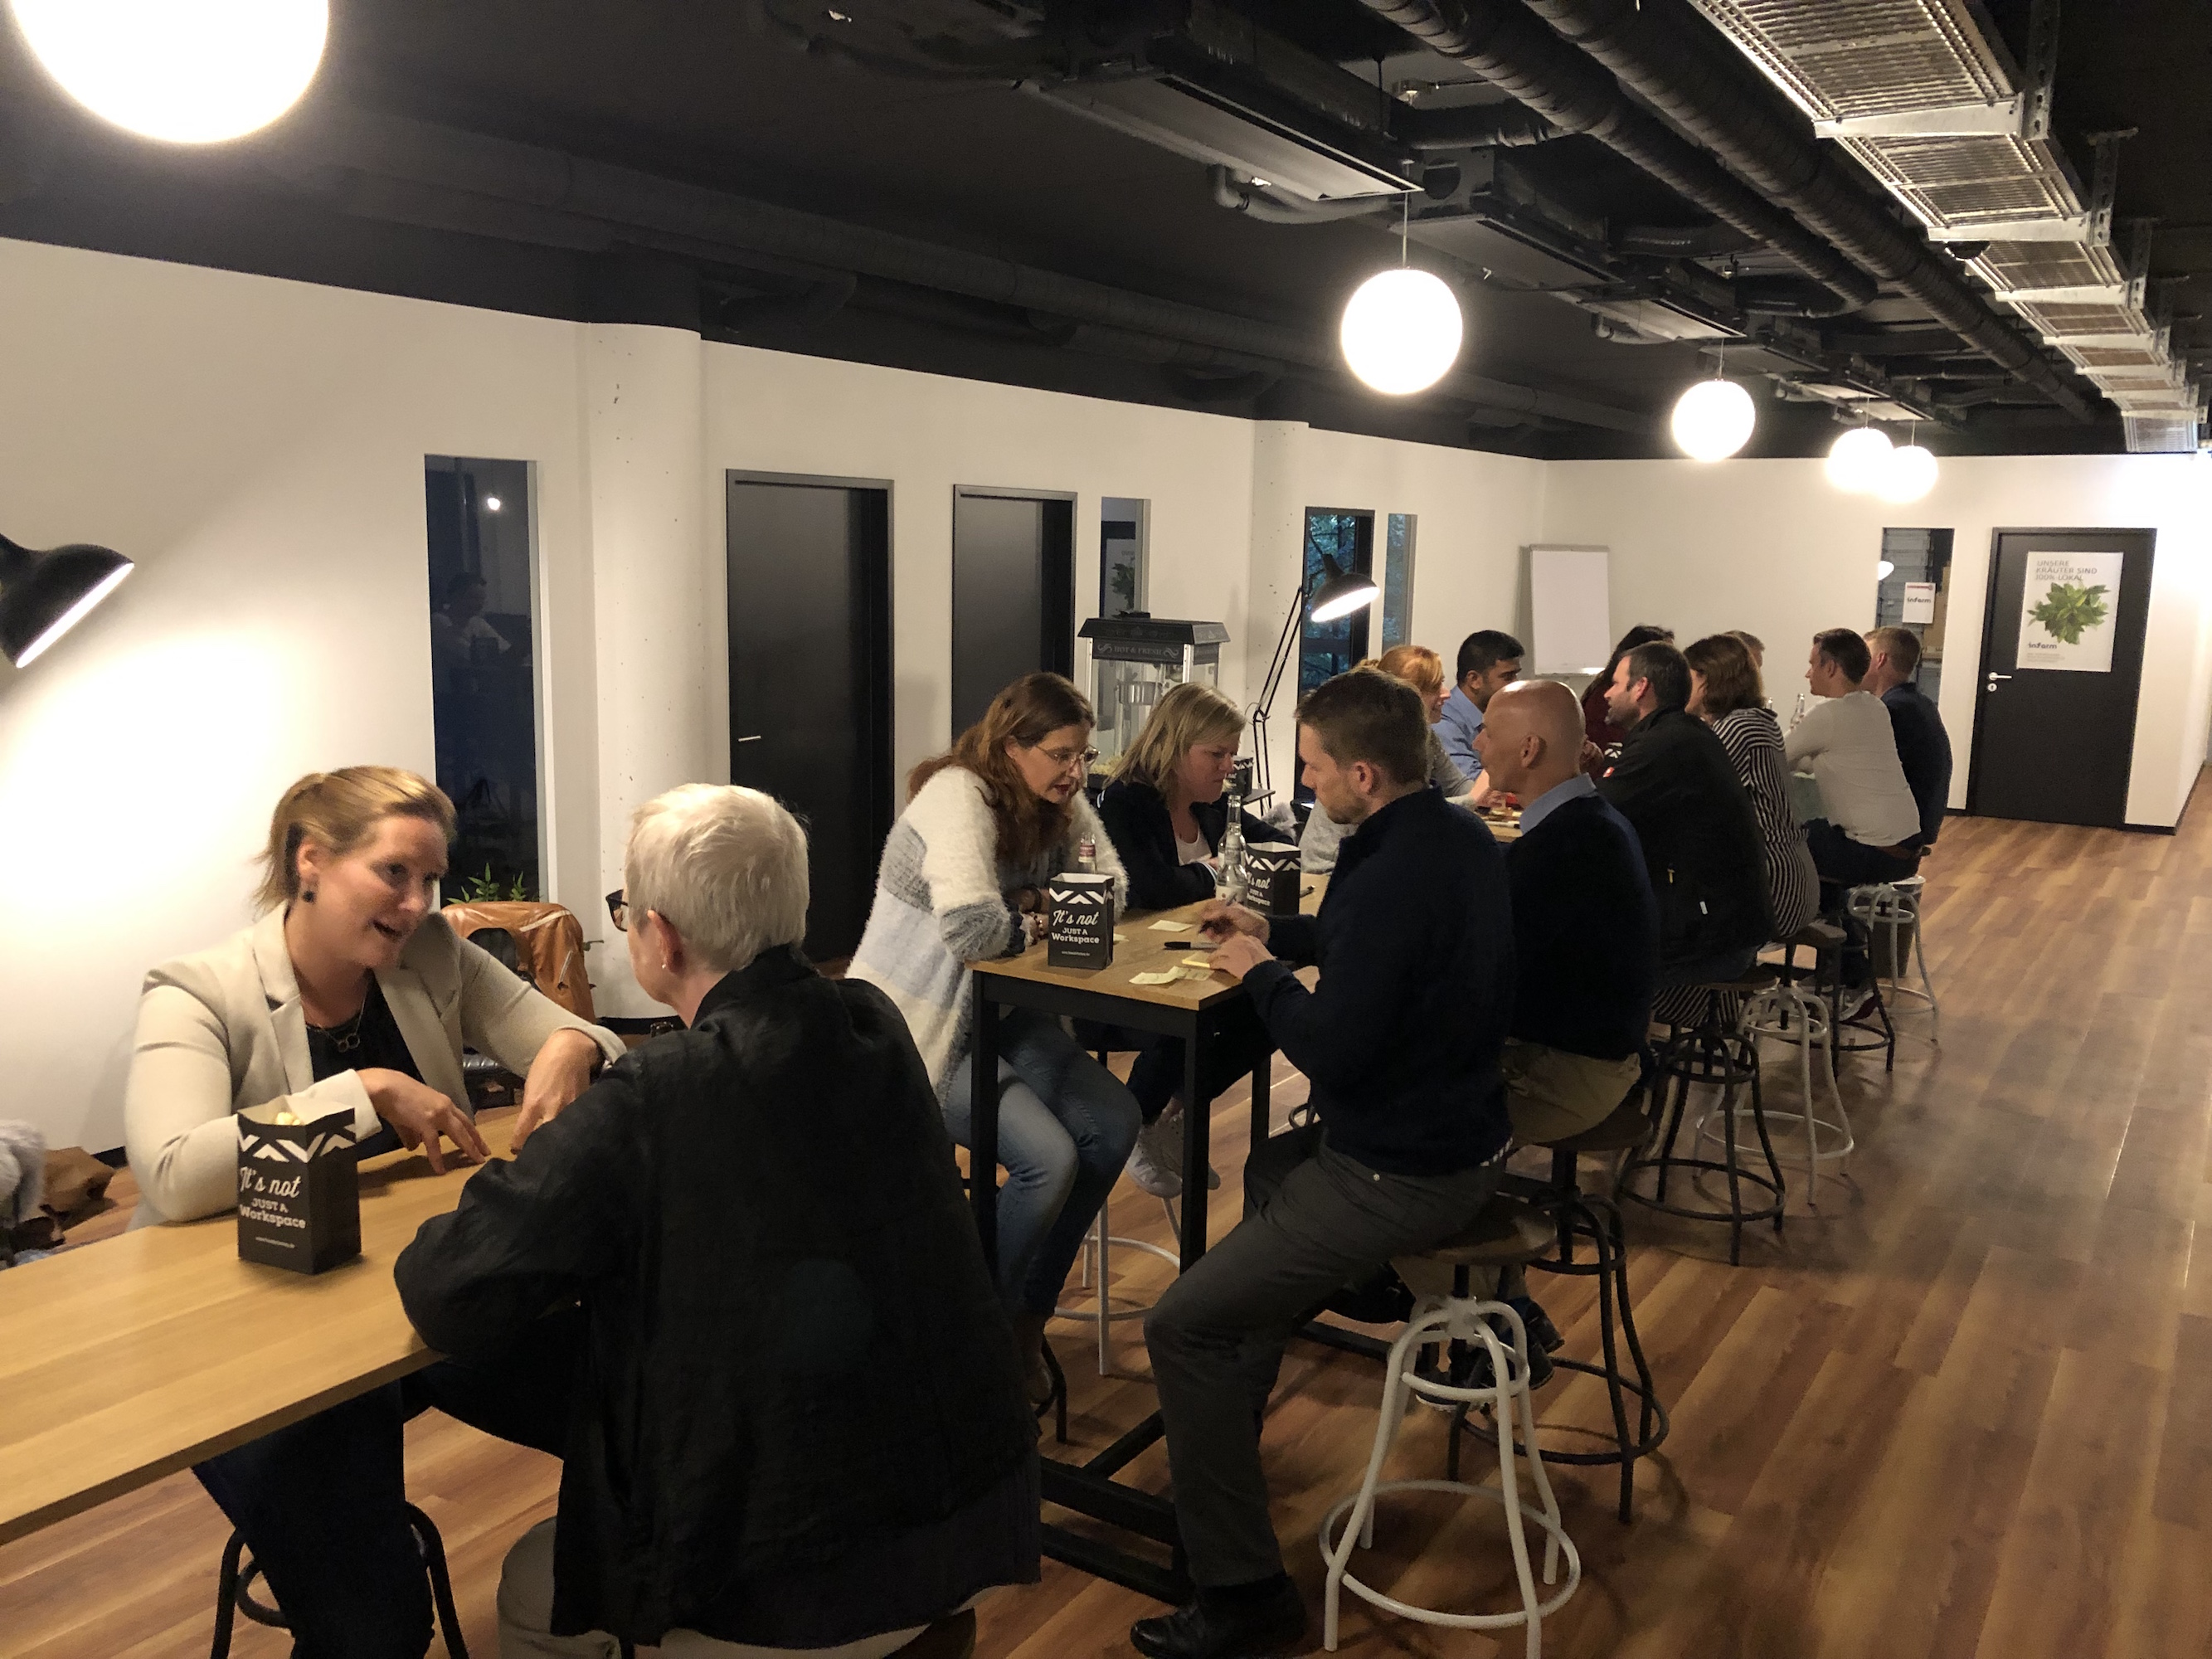 LeanSpeedDating in der Friendsfactory in Düsseldorf